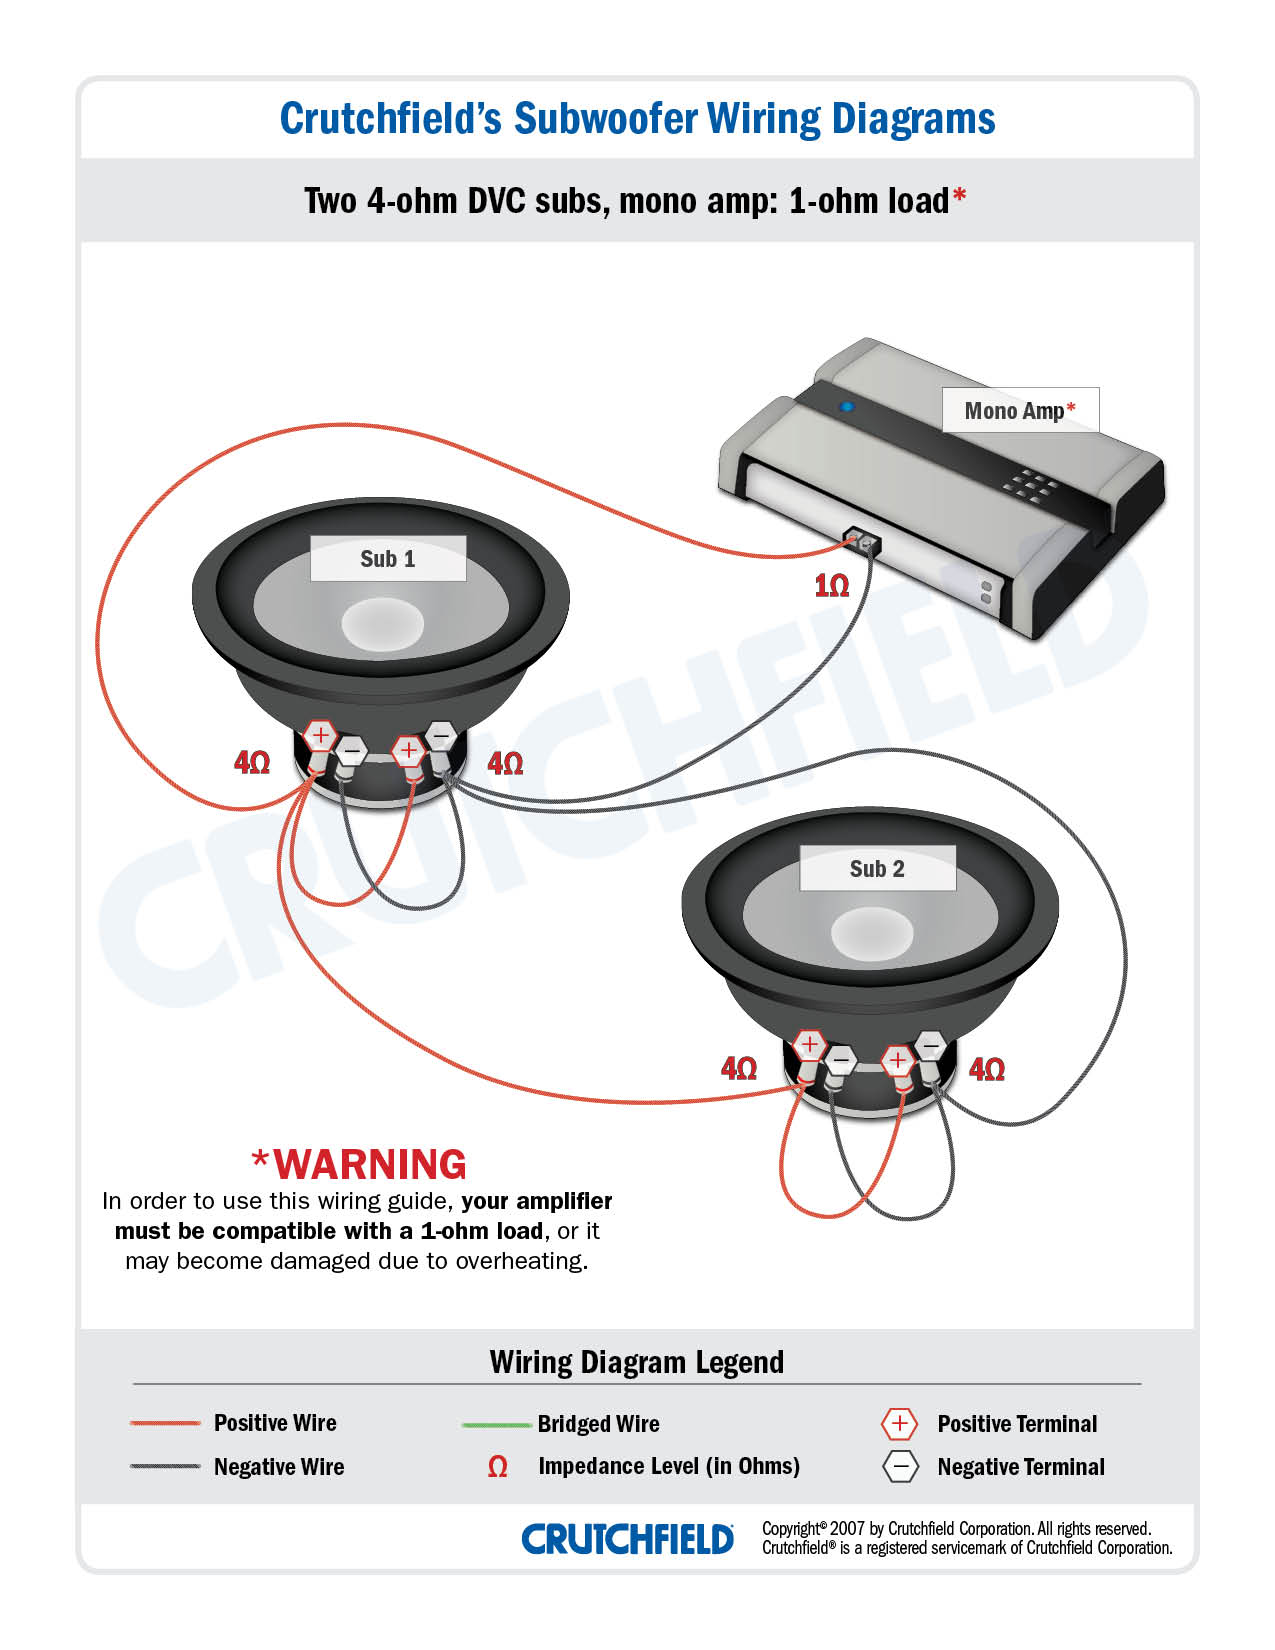 subwoofer wiring diagrams on kicker wiring diagram dvc